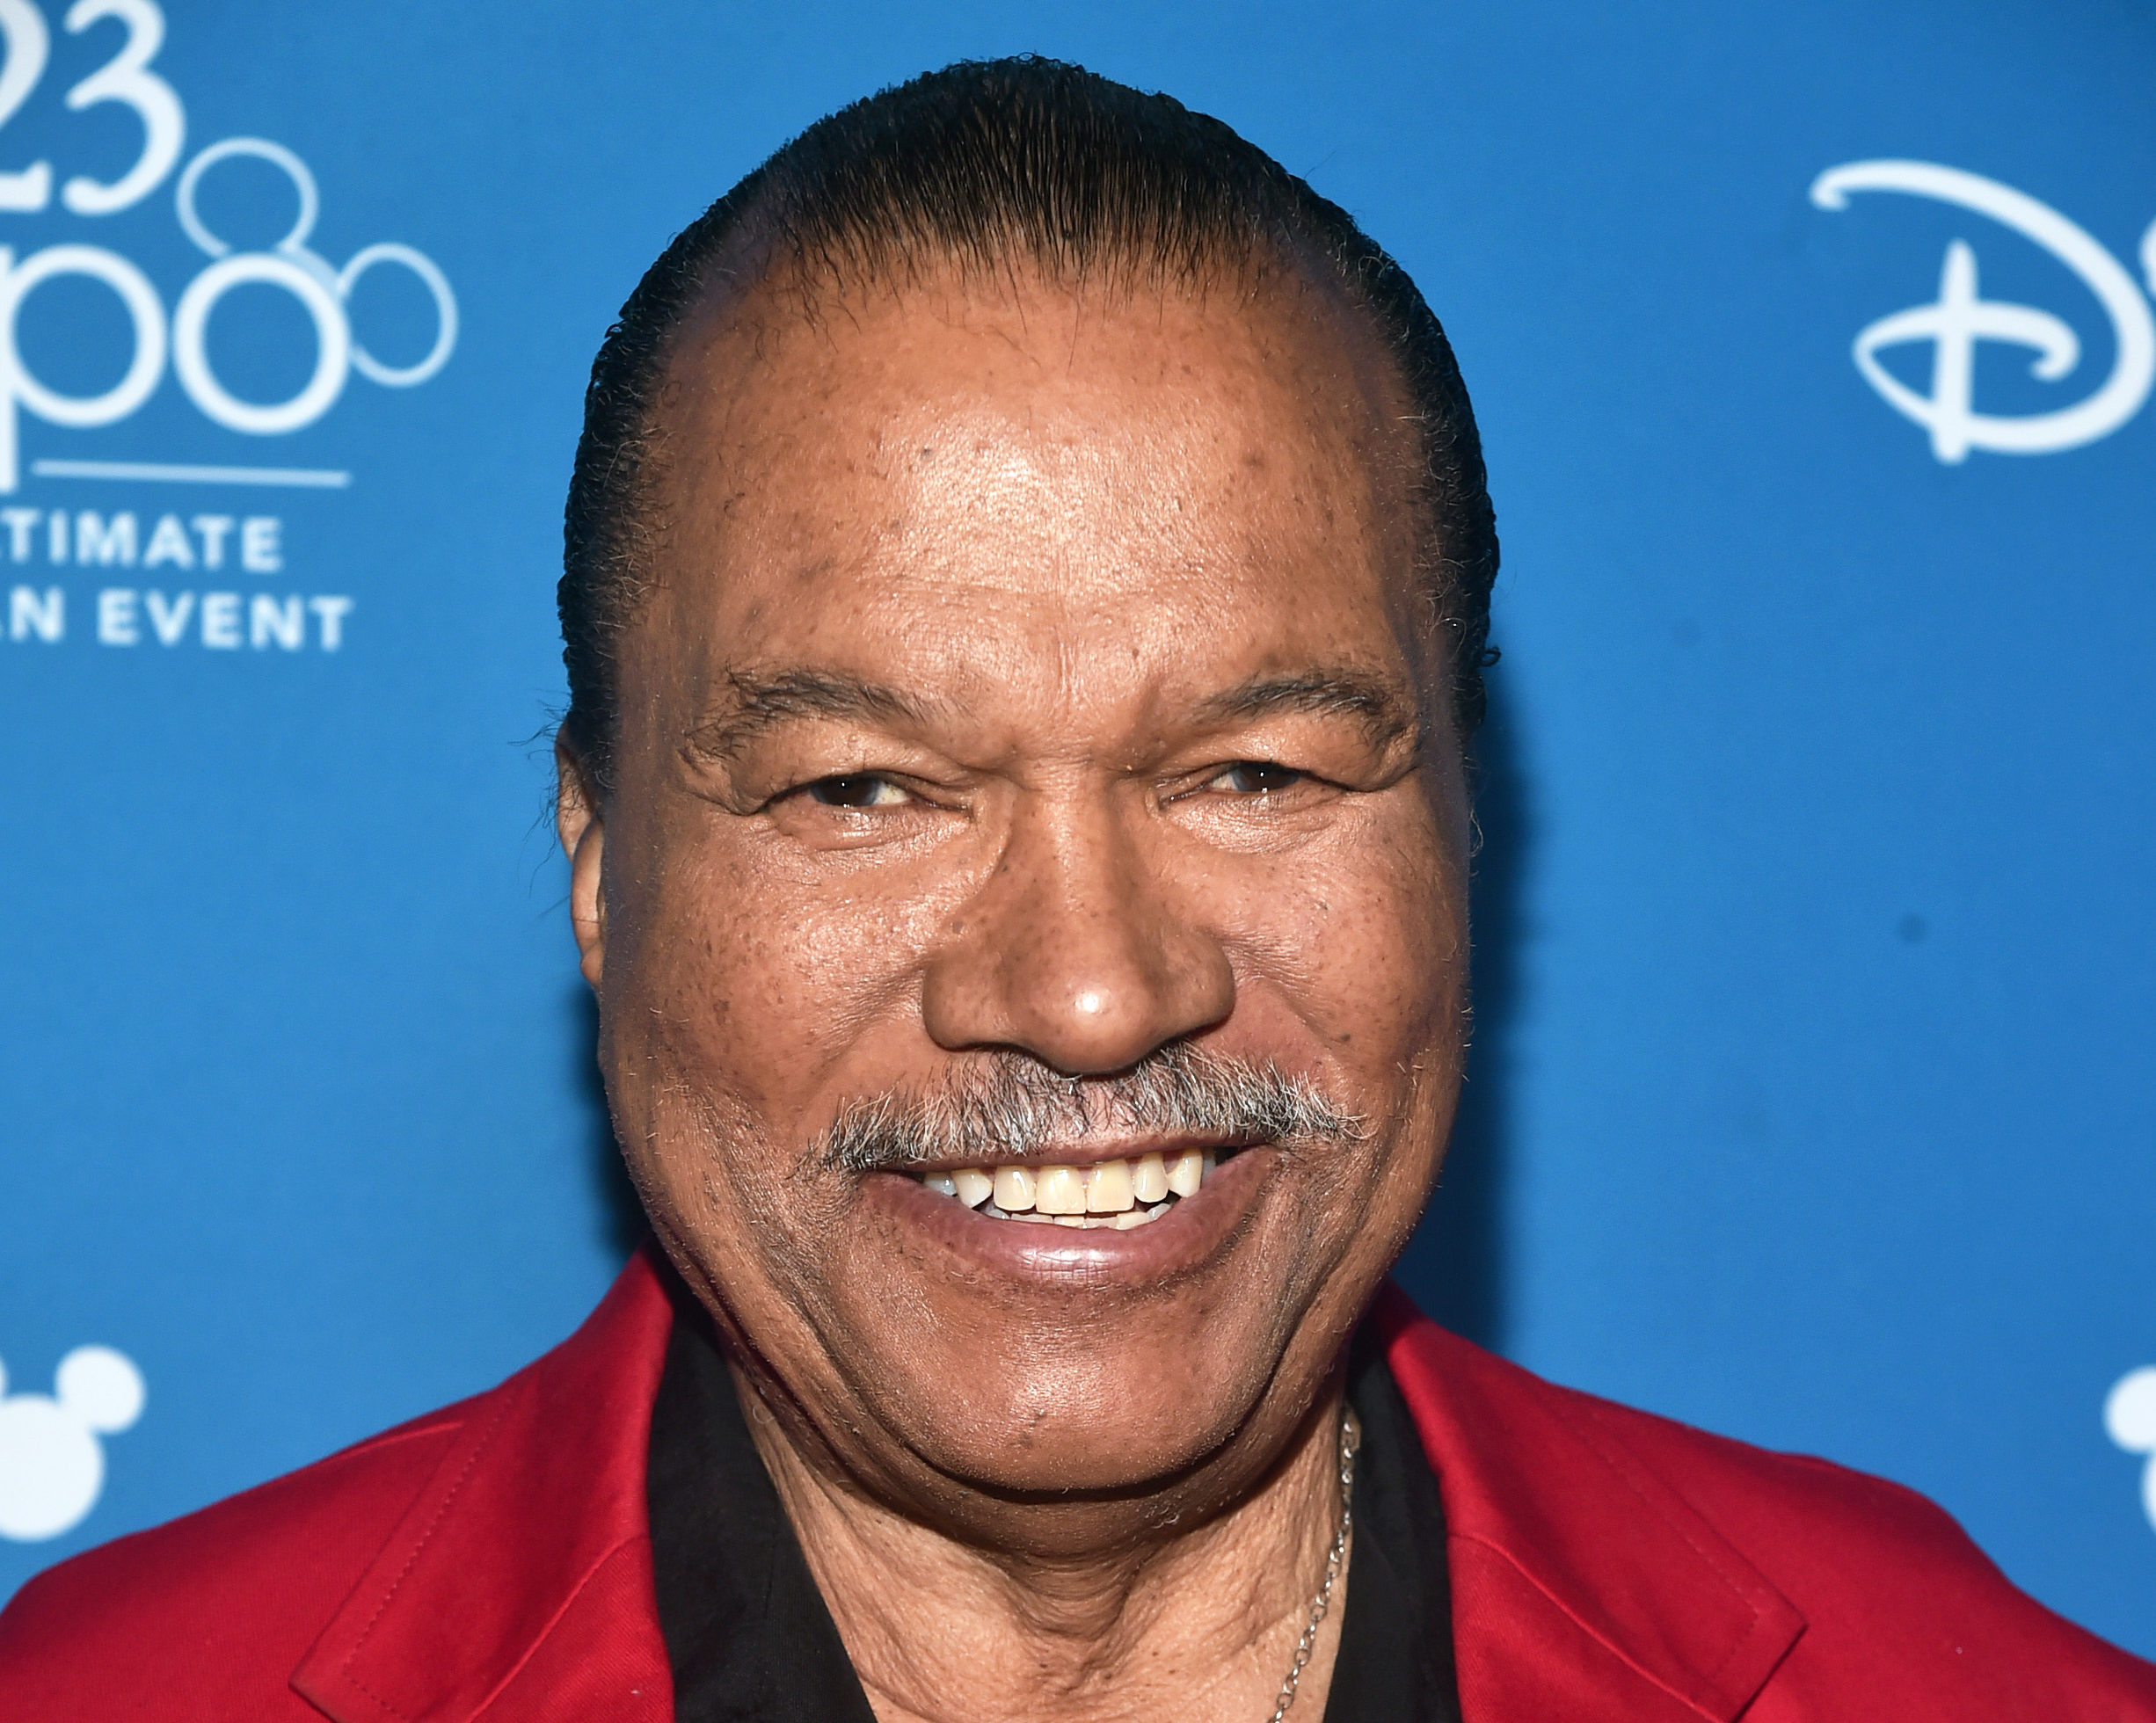 Billy Dee Williams comes out as gender fluid